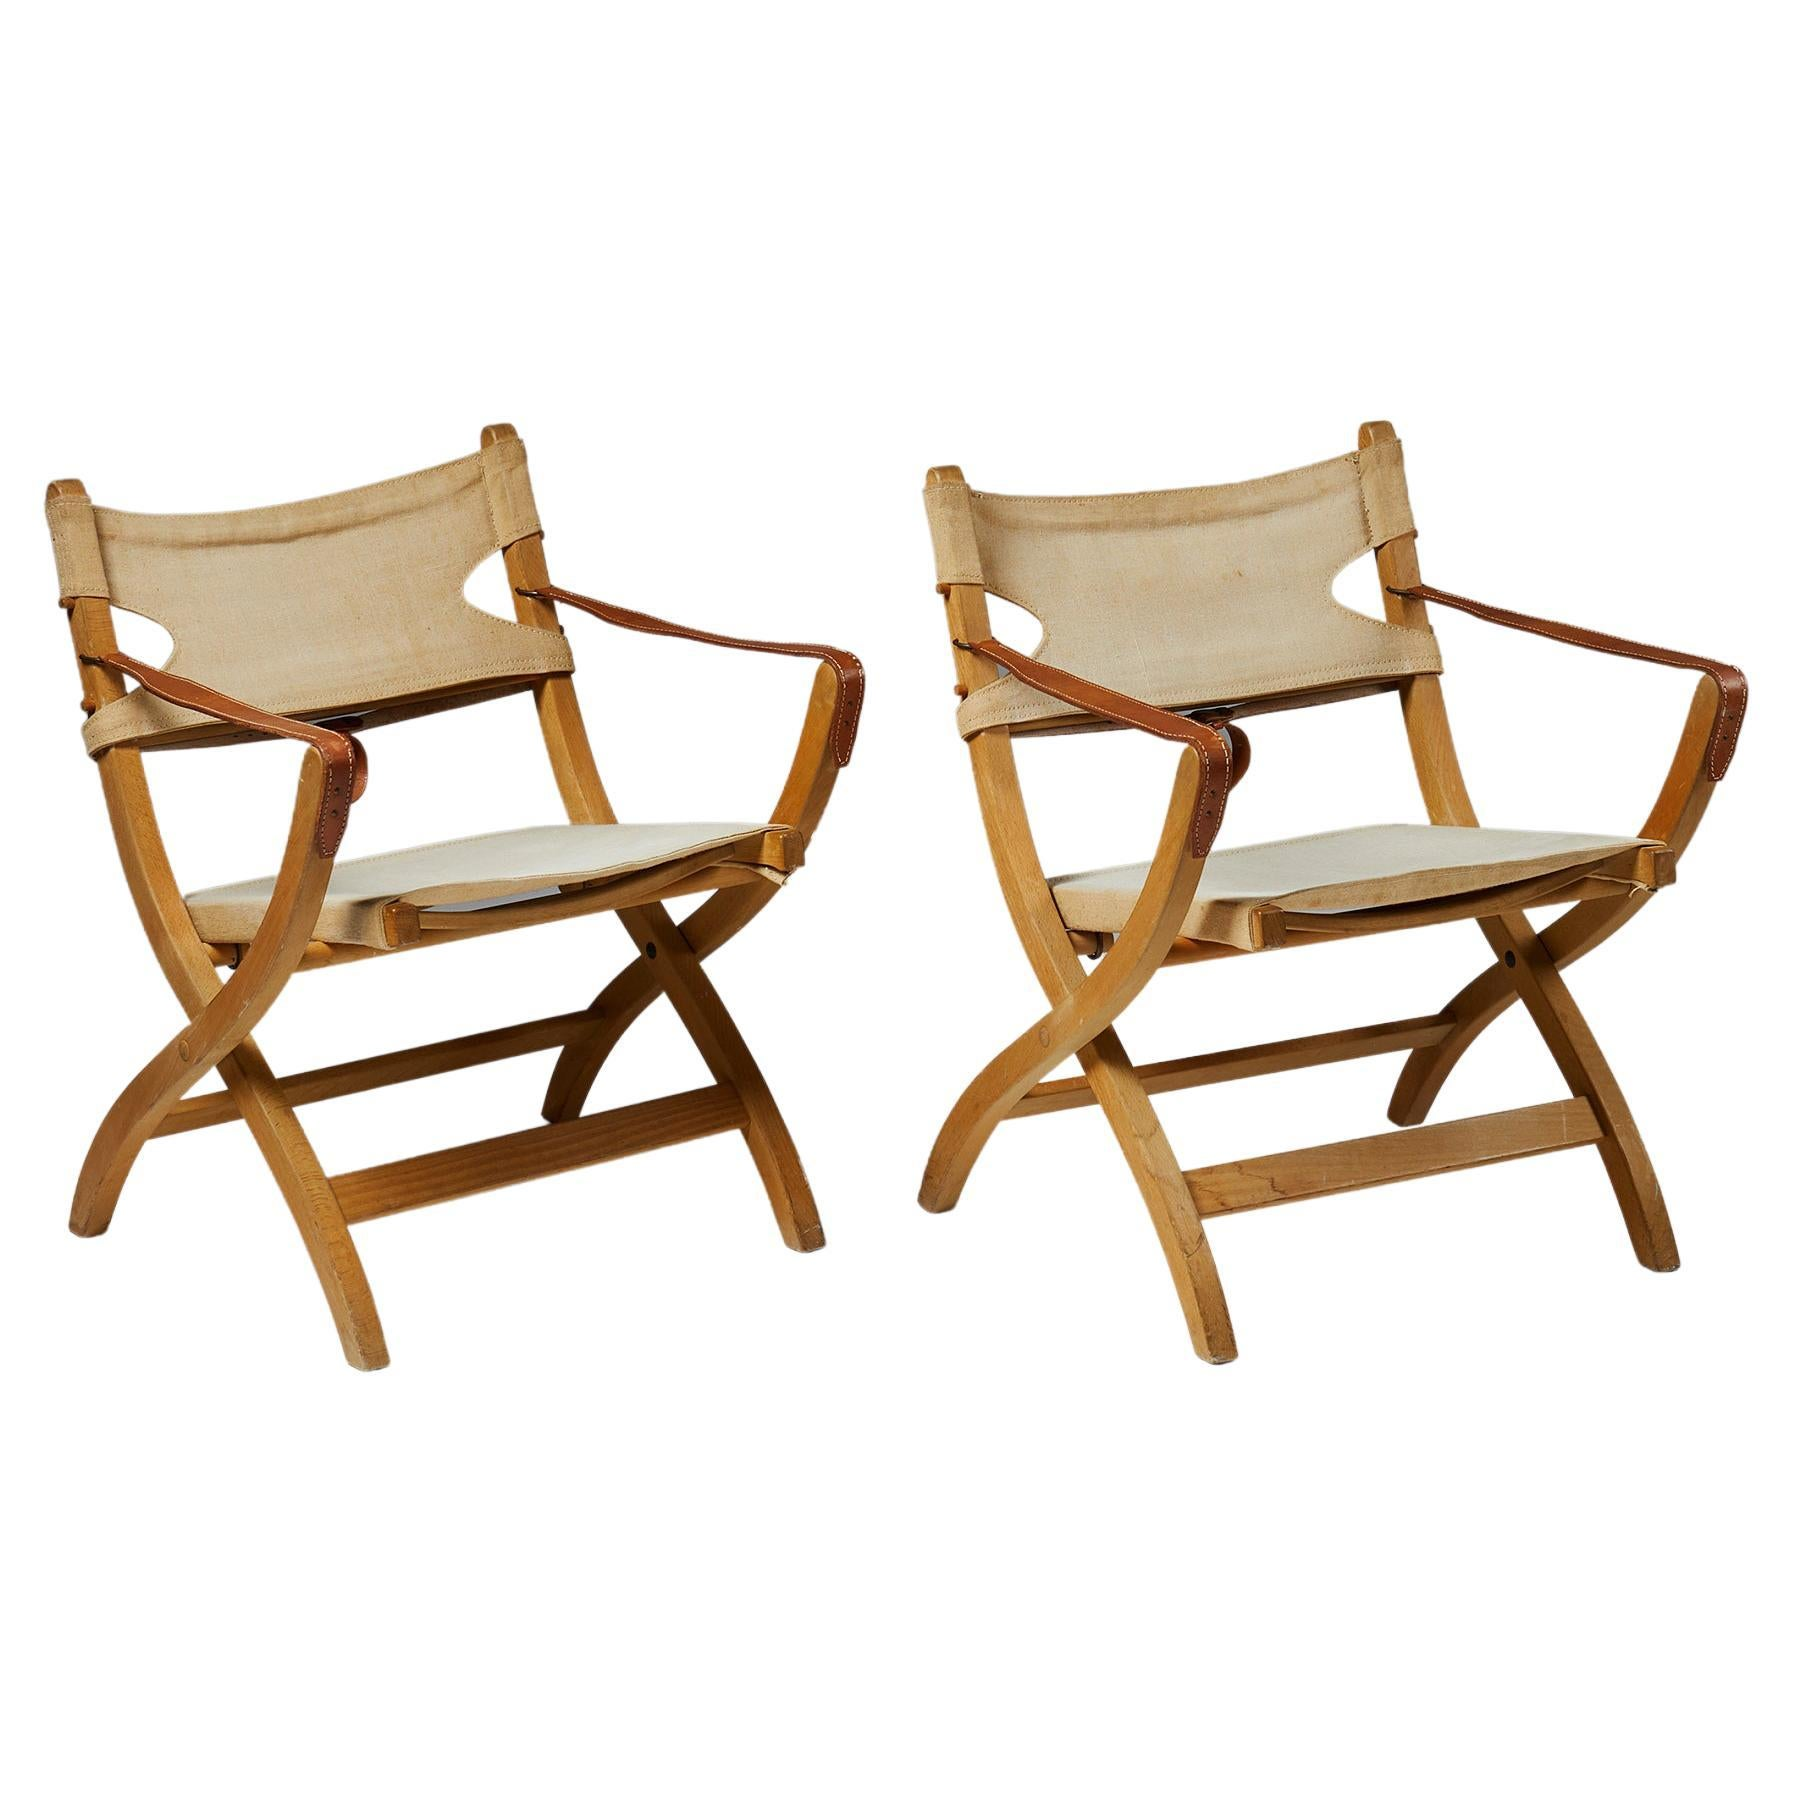 Pair of Folding Chairs Designed by Poul Hundevad for Vamdrup